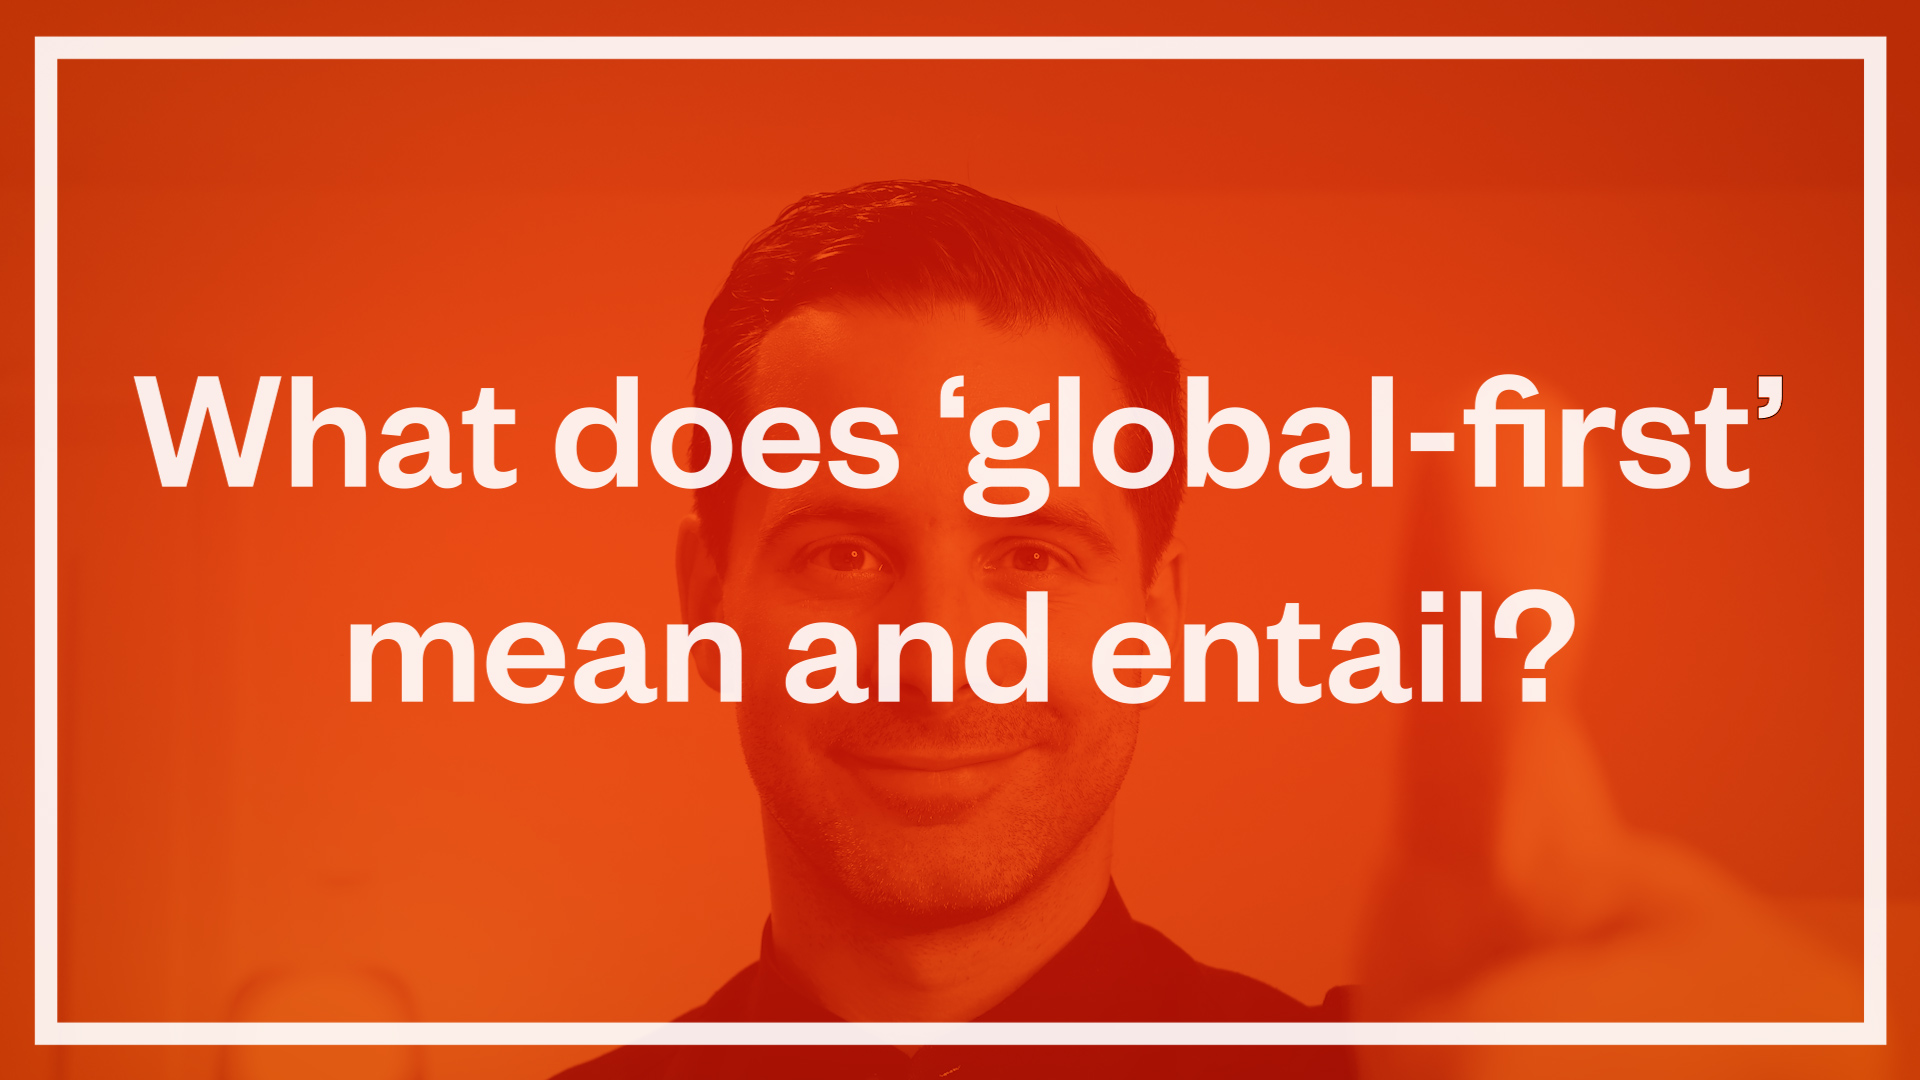 What does 'global-first' mean and entail?